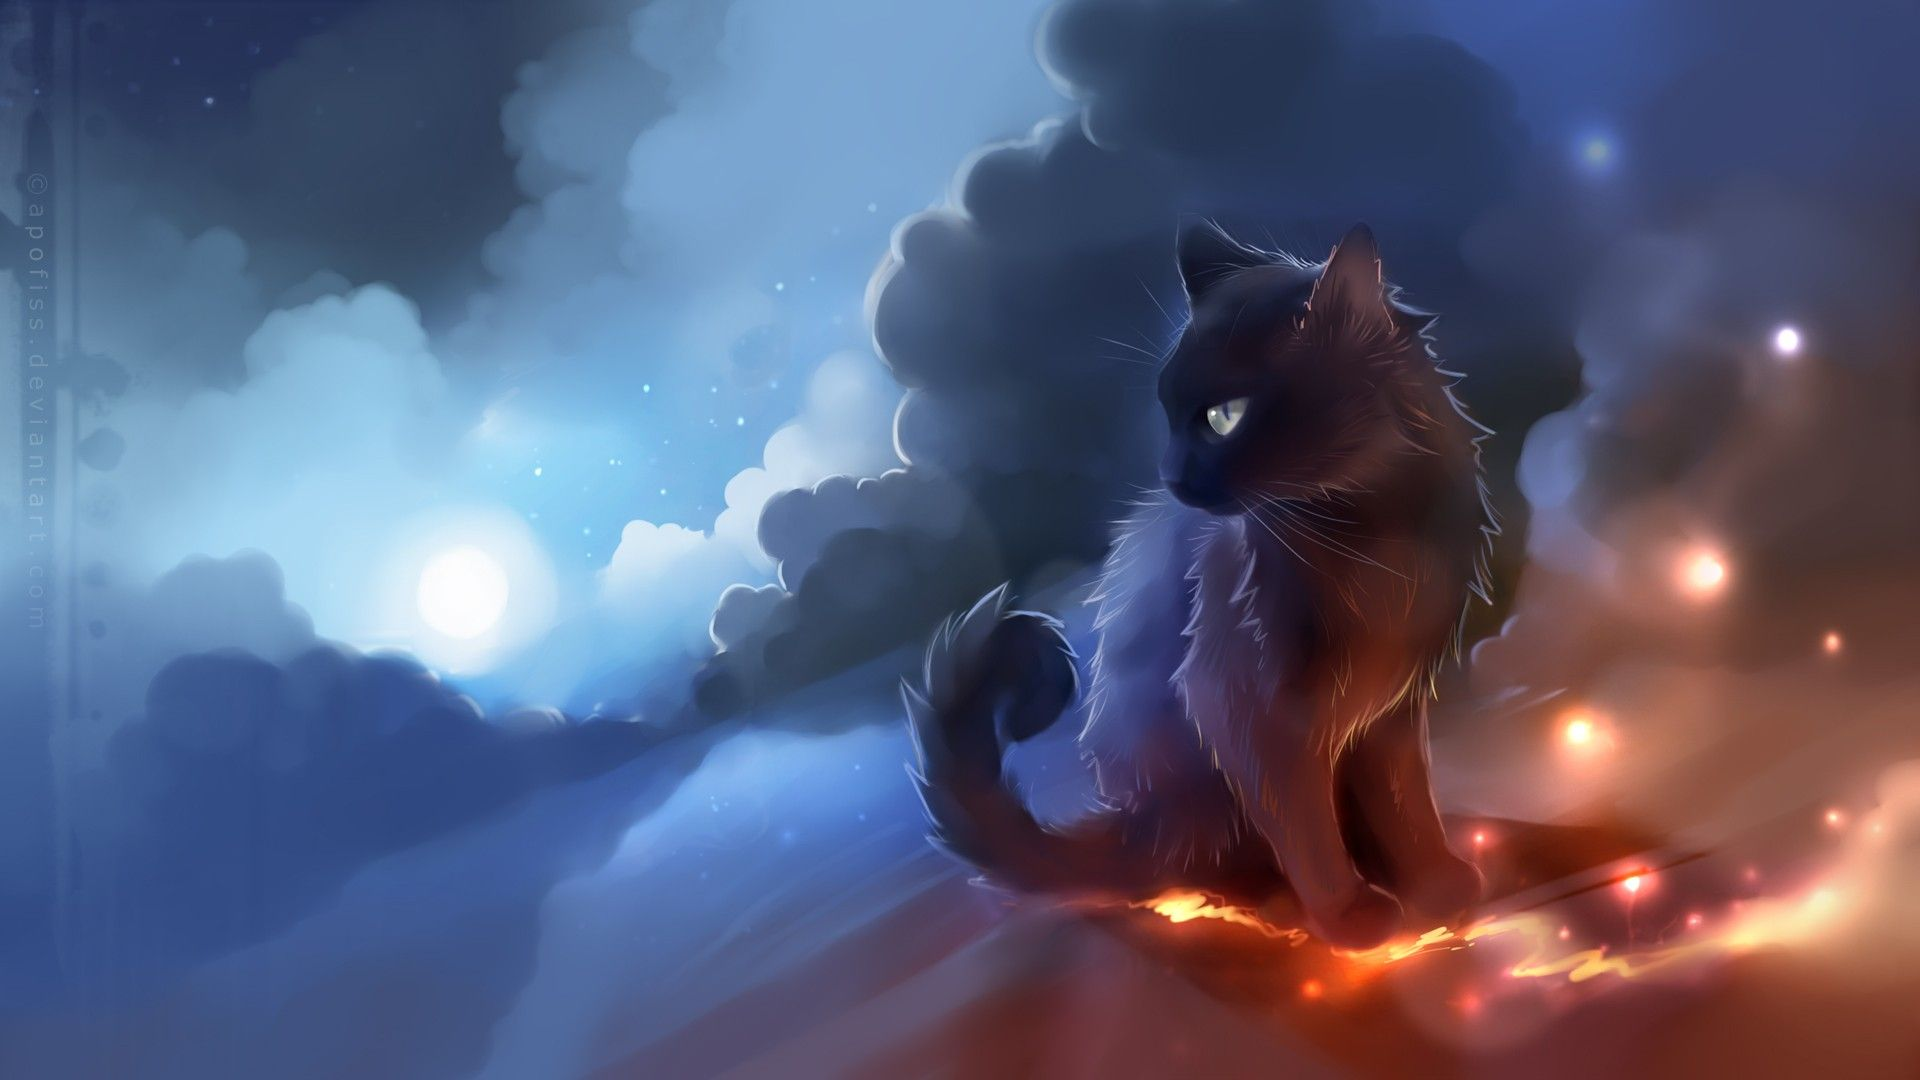 Apofiss Cat On Clouds Hd Wallpaper Cats Illustration Cute Cat